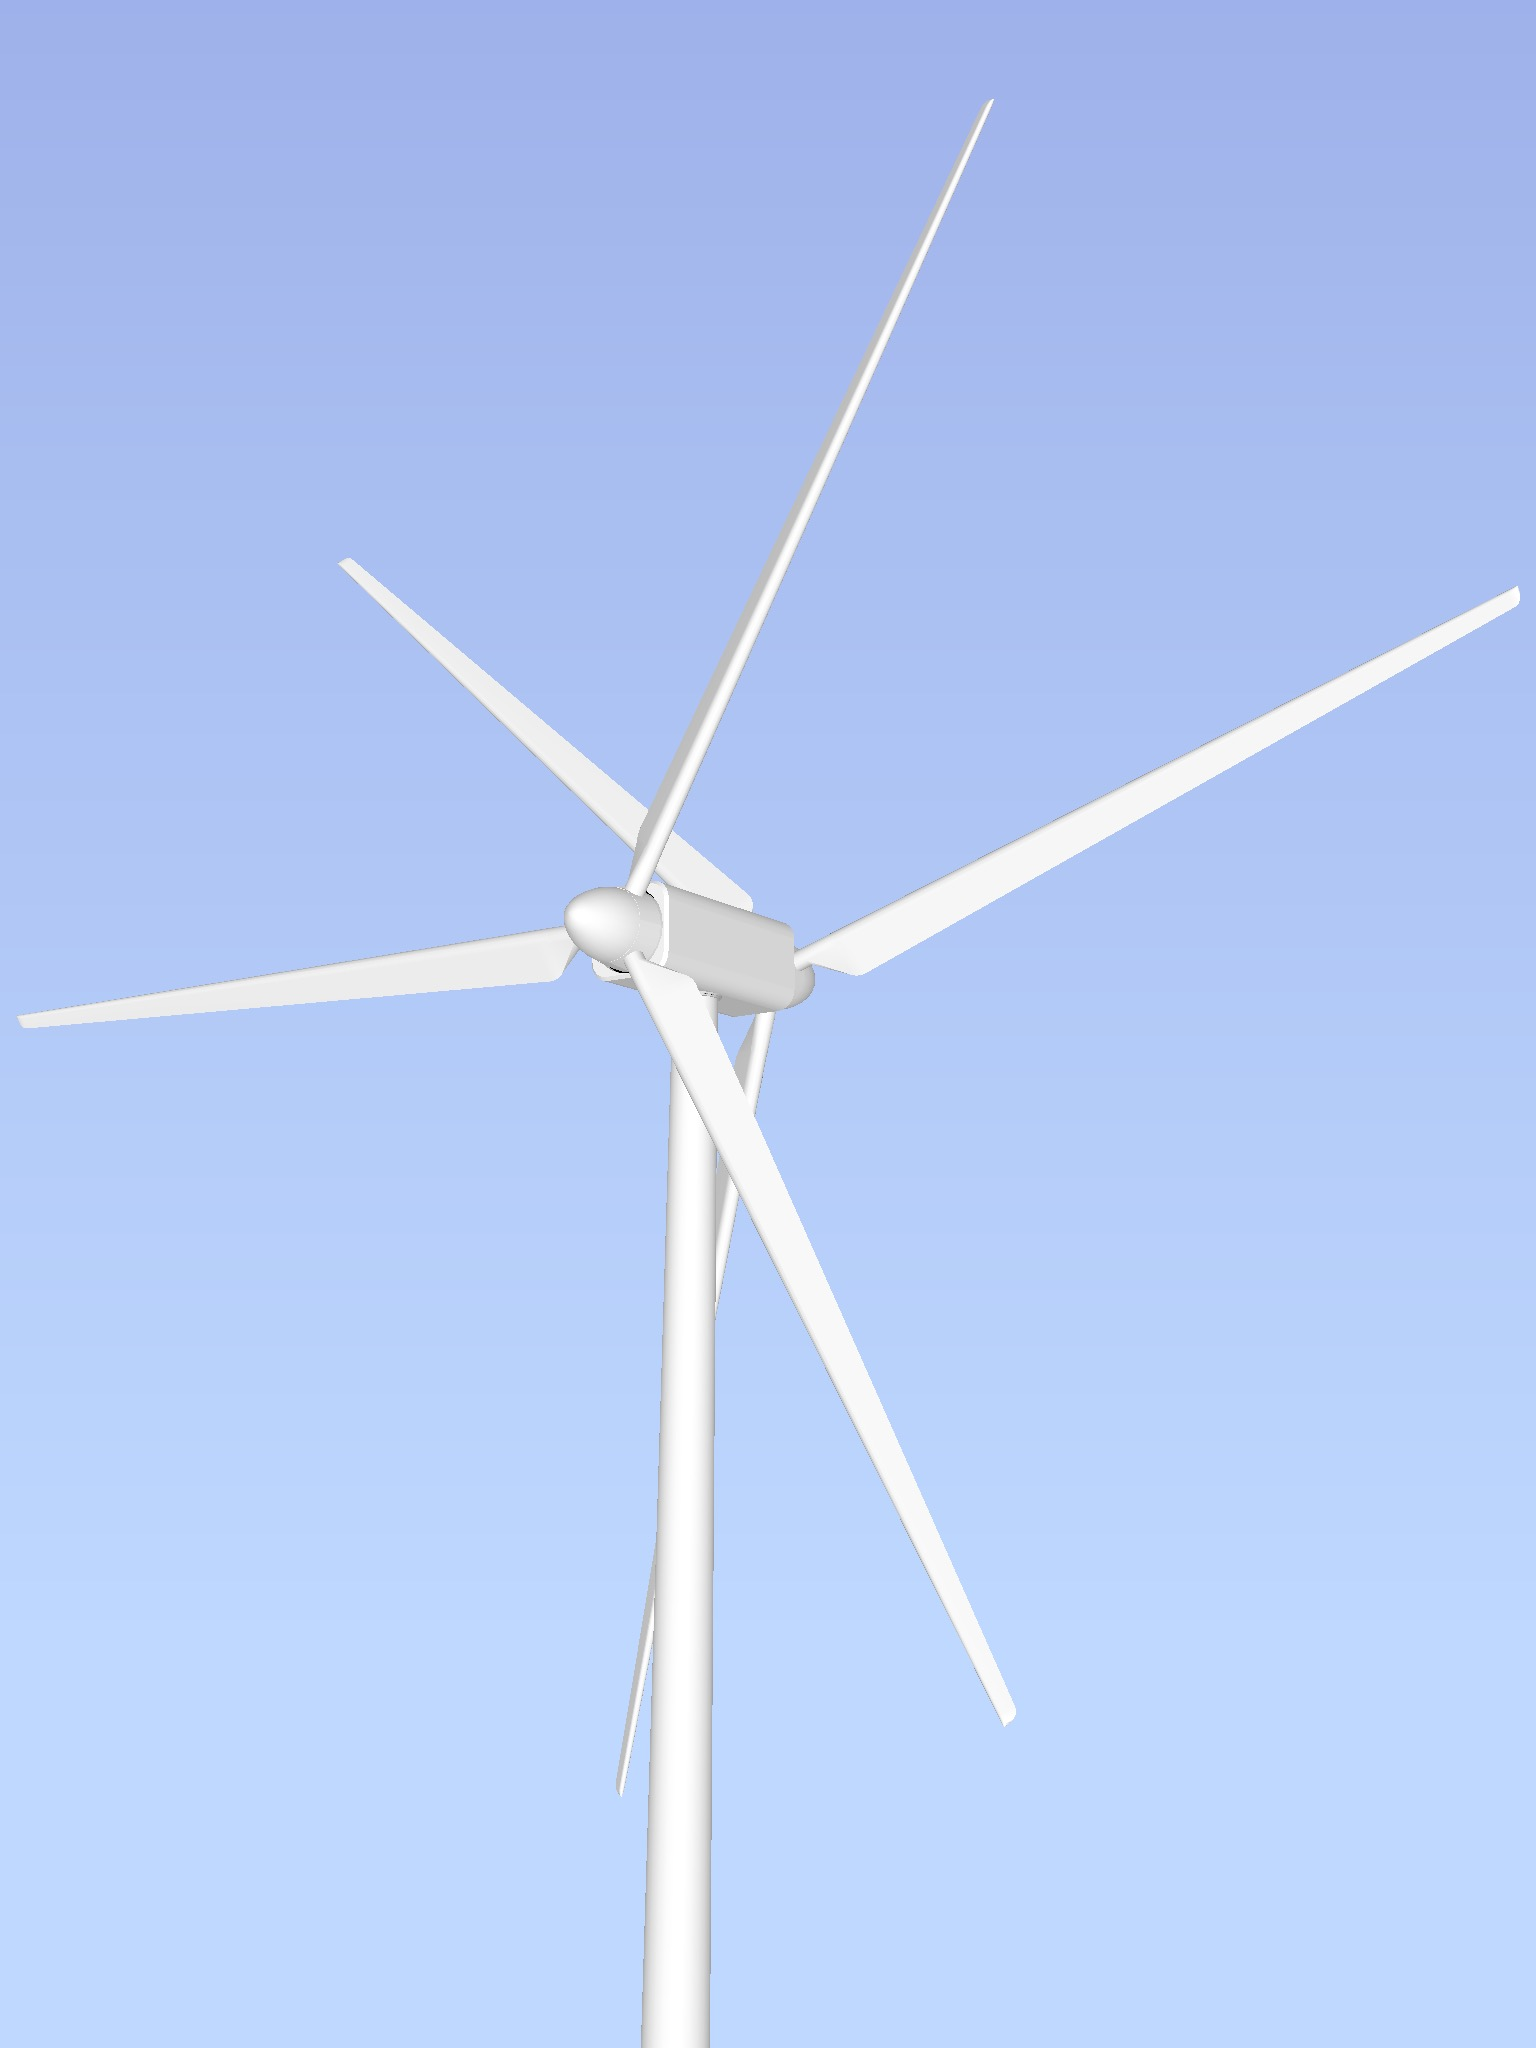 design of wind turbine control Wind energy explained 248 both of the turbine's design and the wind resource the designer cannot control the resource, but must consider how best to utilize it.